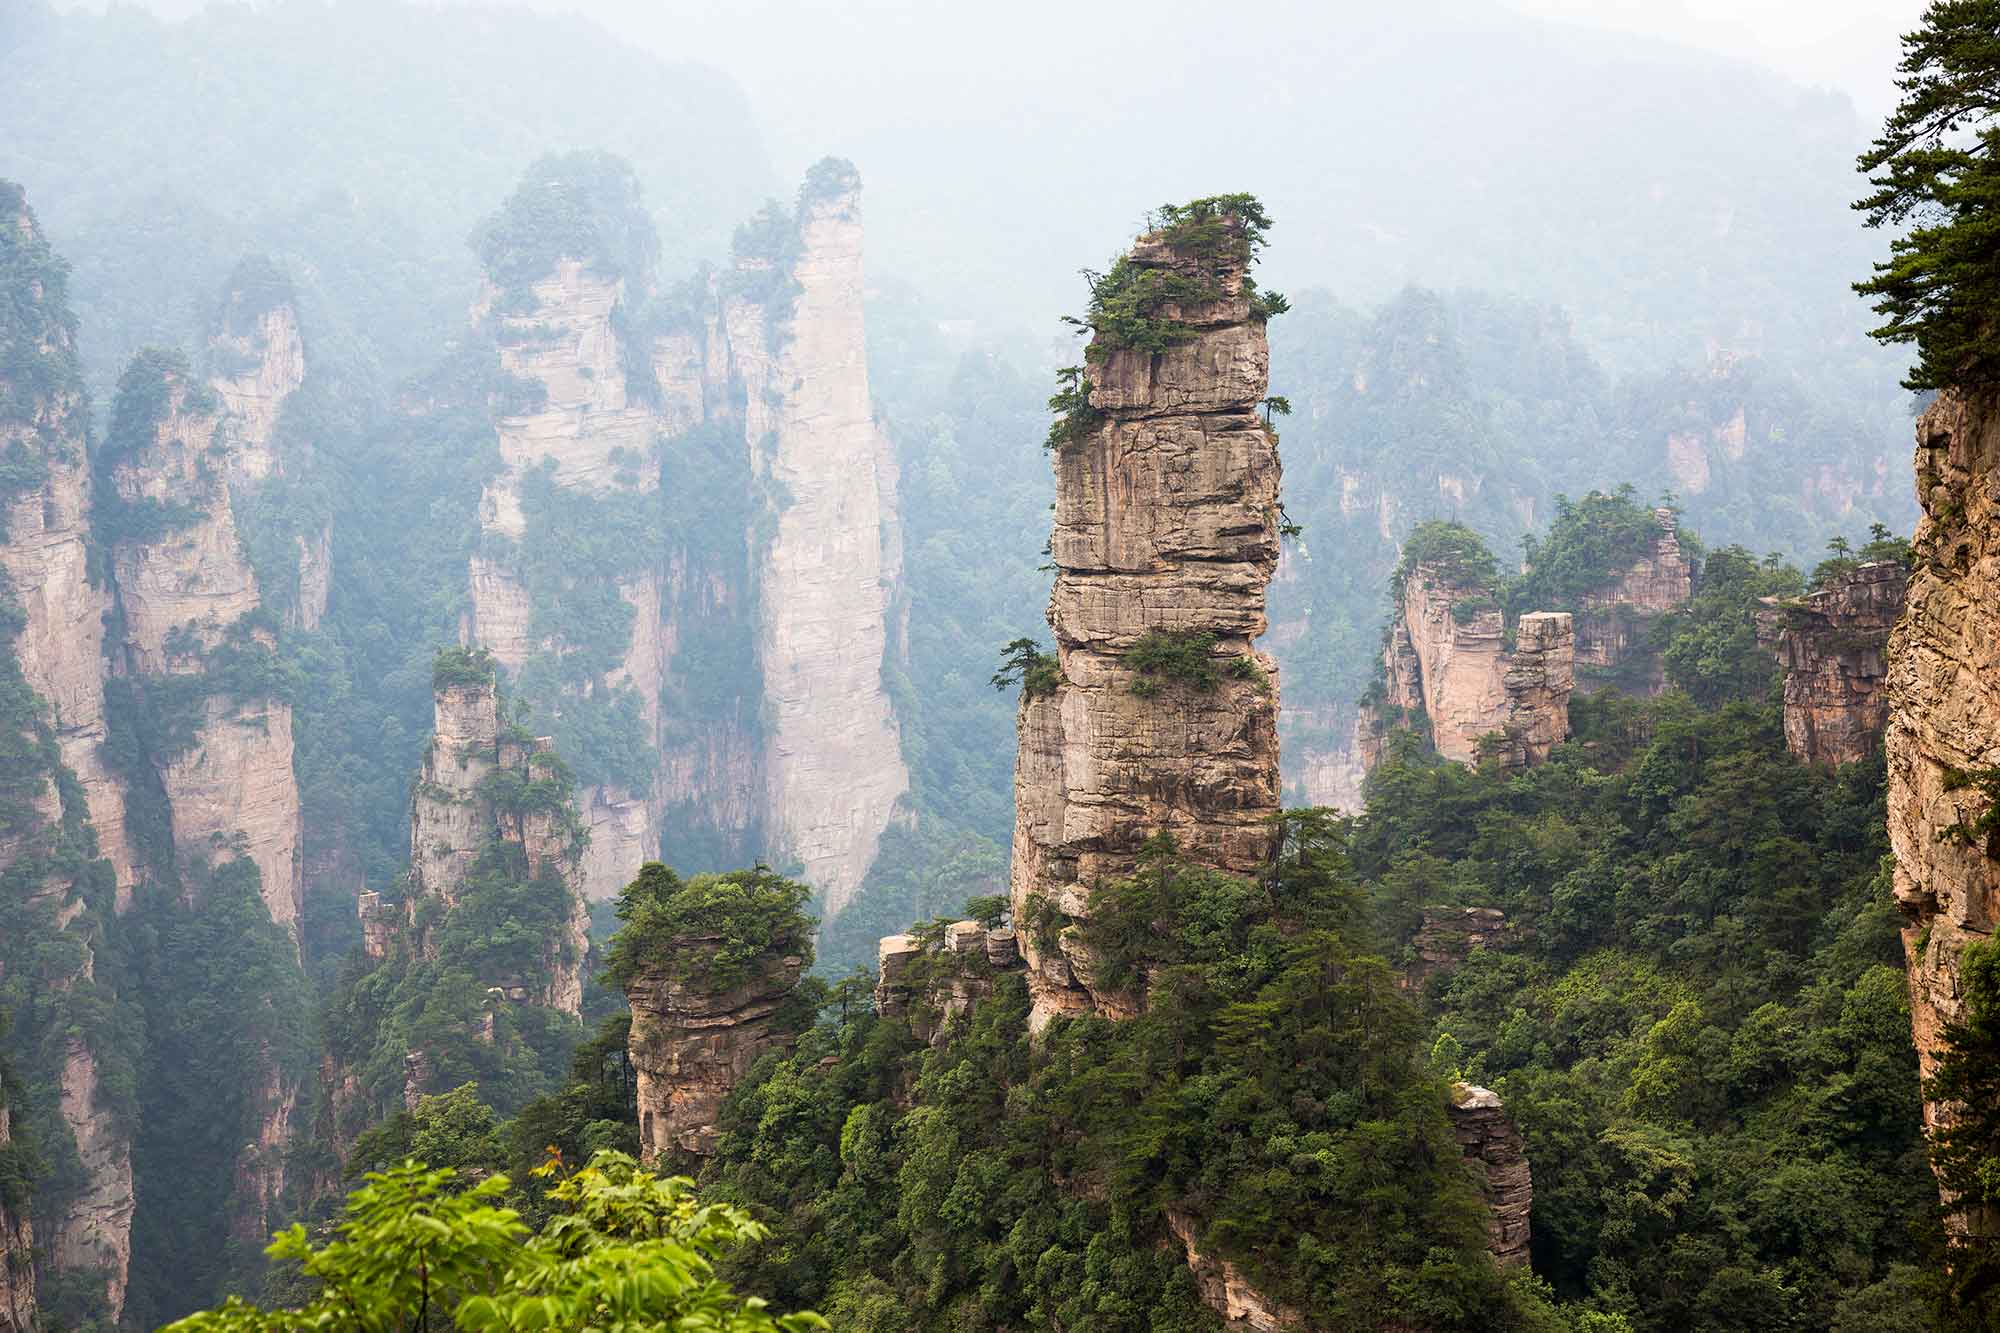 "Zhangjiajie is famous for its 3,000 vertical pillars, each hundreds of feet tall and covered in dense green foliage. These pillars were formed by erosion and draw in upwards of 30 million tourists every year. Apart from the tourist masses, this place is absolutely stunning. No wonder it was the inspiration for the floating mountains in the movie ""Avatar."" © ULLI MAIER & NISA MAIER"